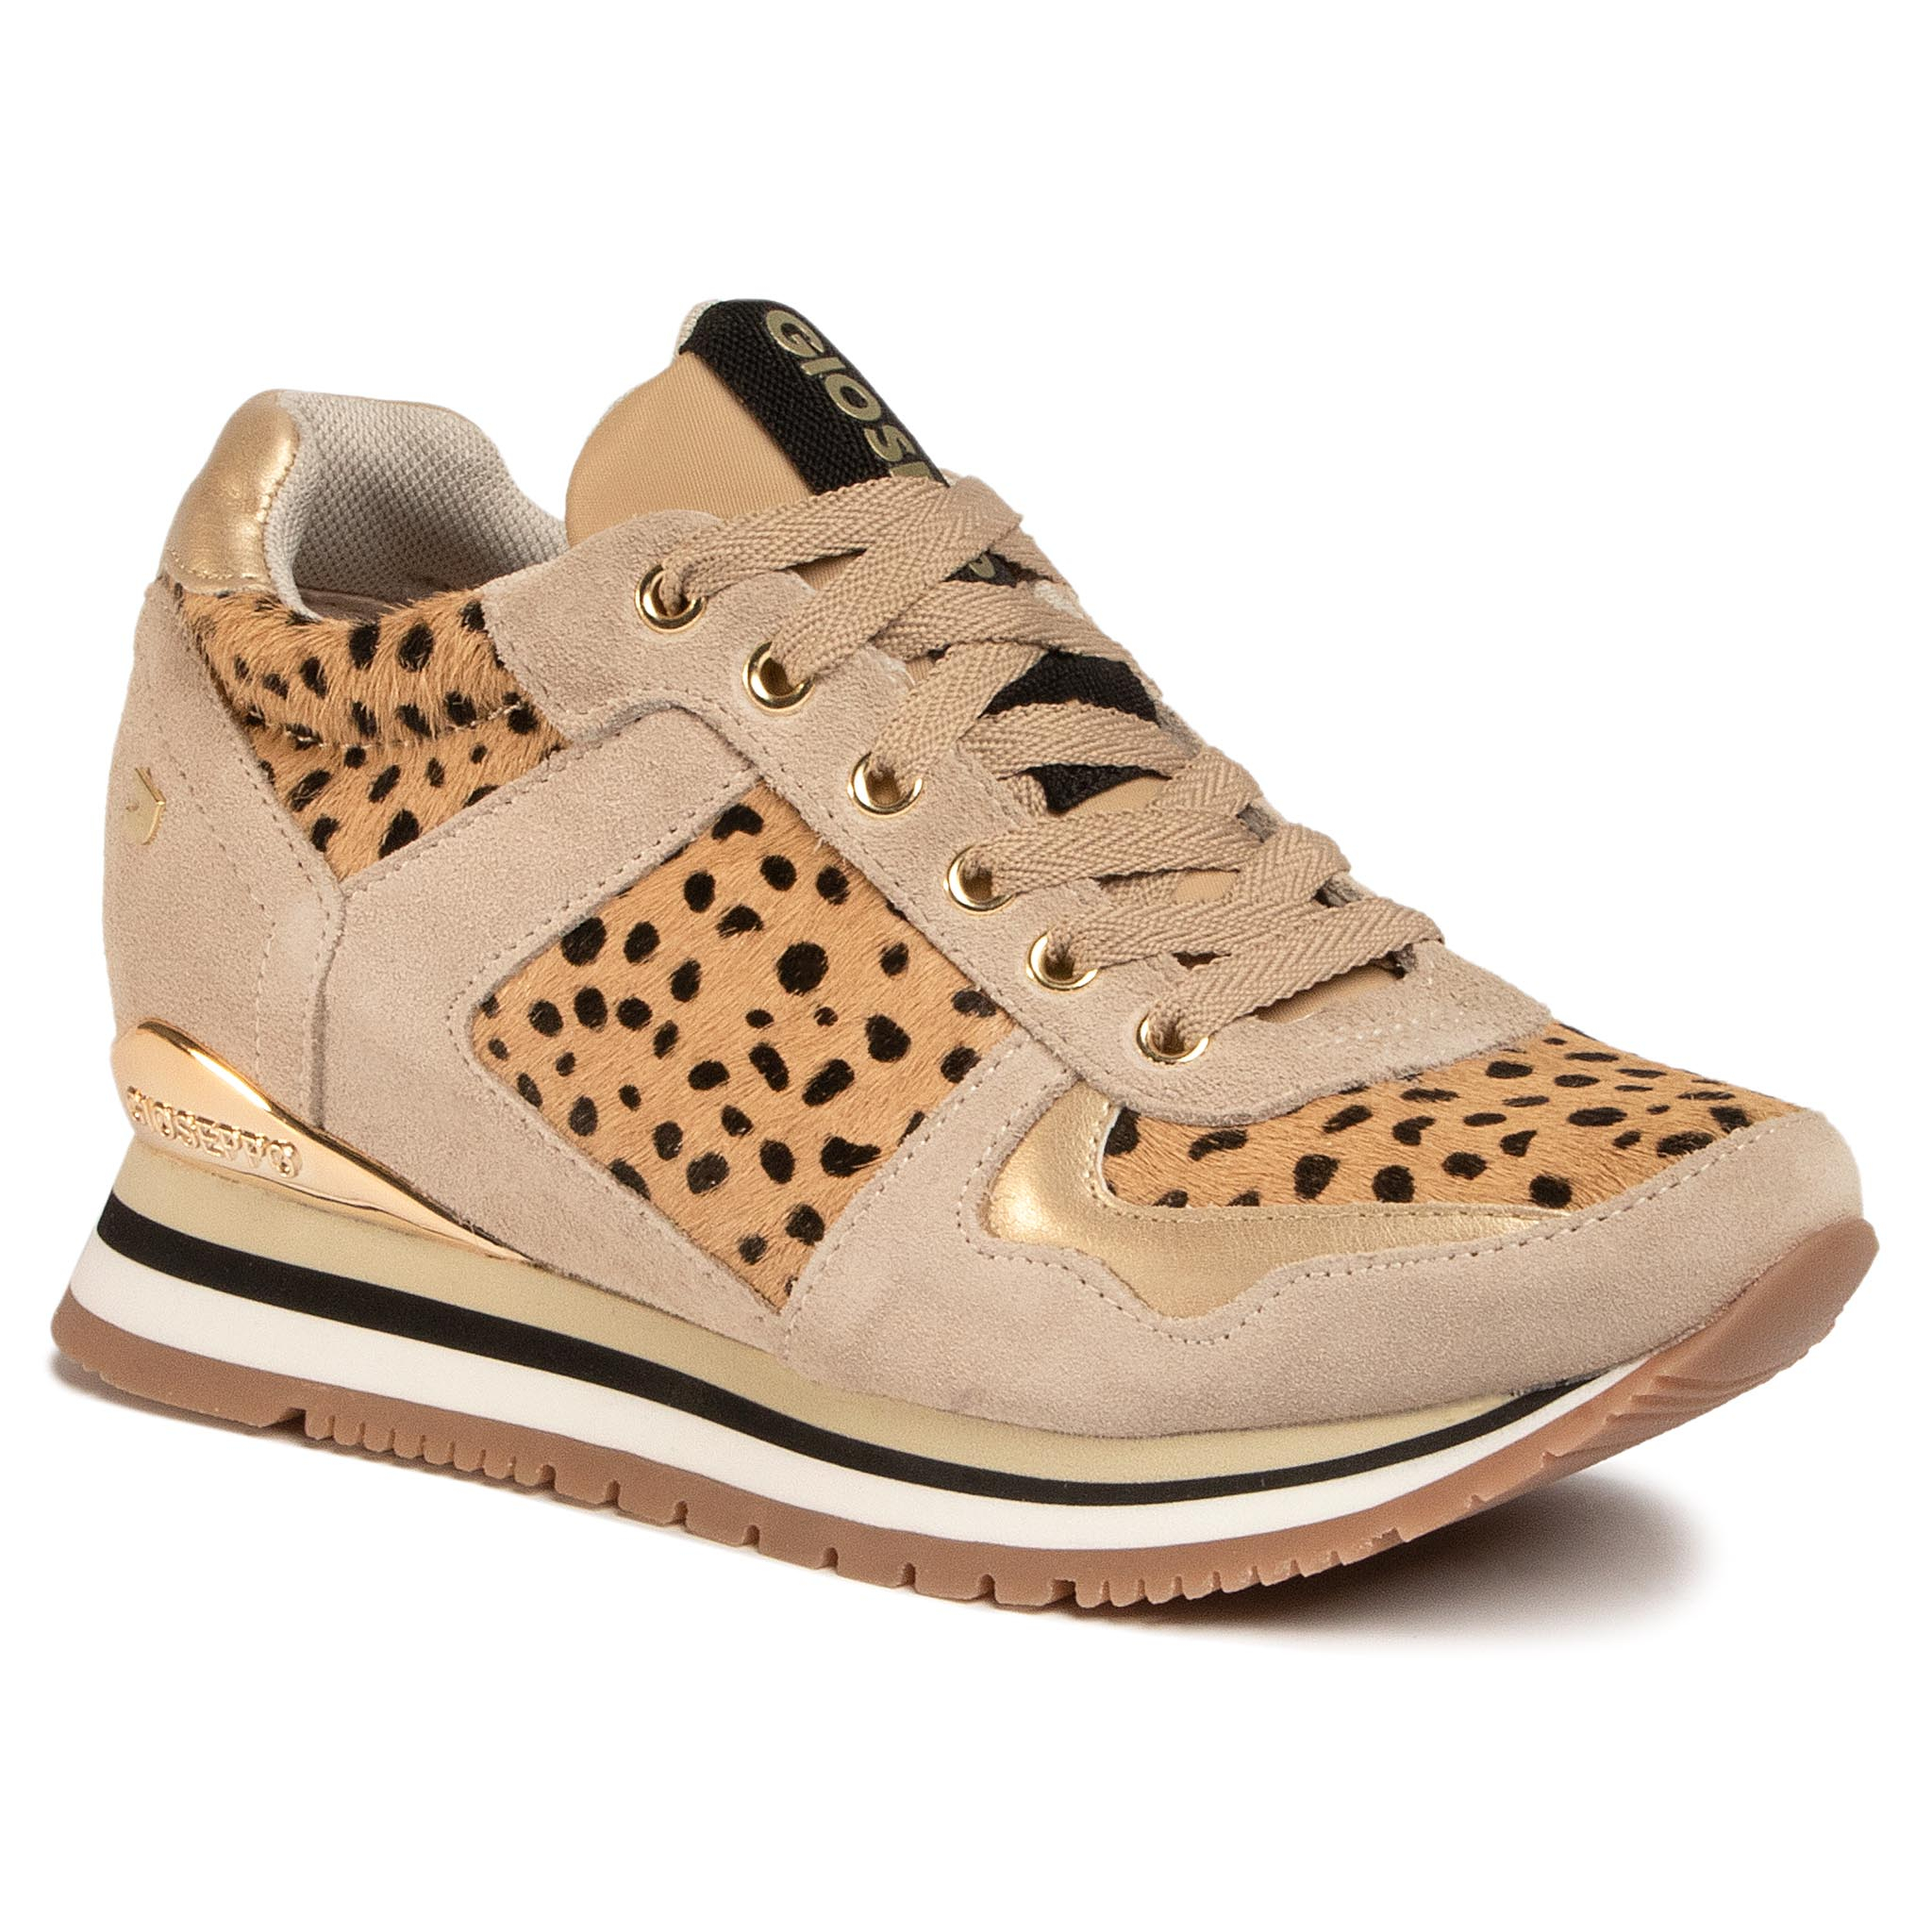 Sneakers GIOSEPPO - Ansty 58746 Leopard